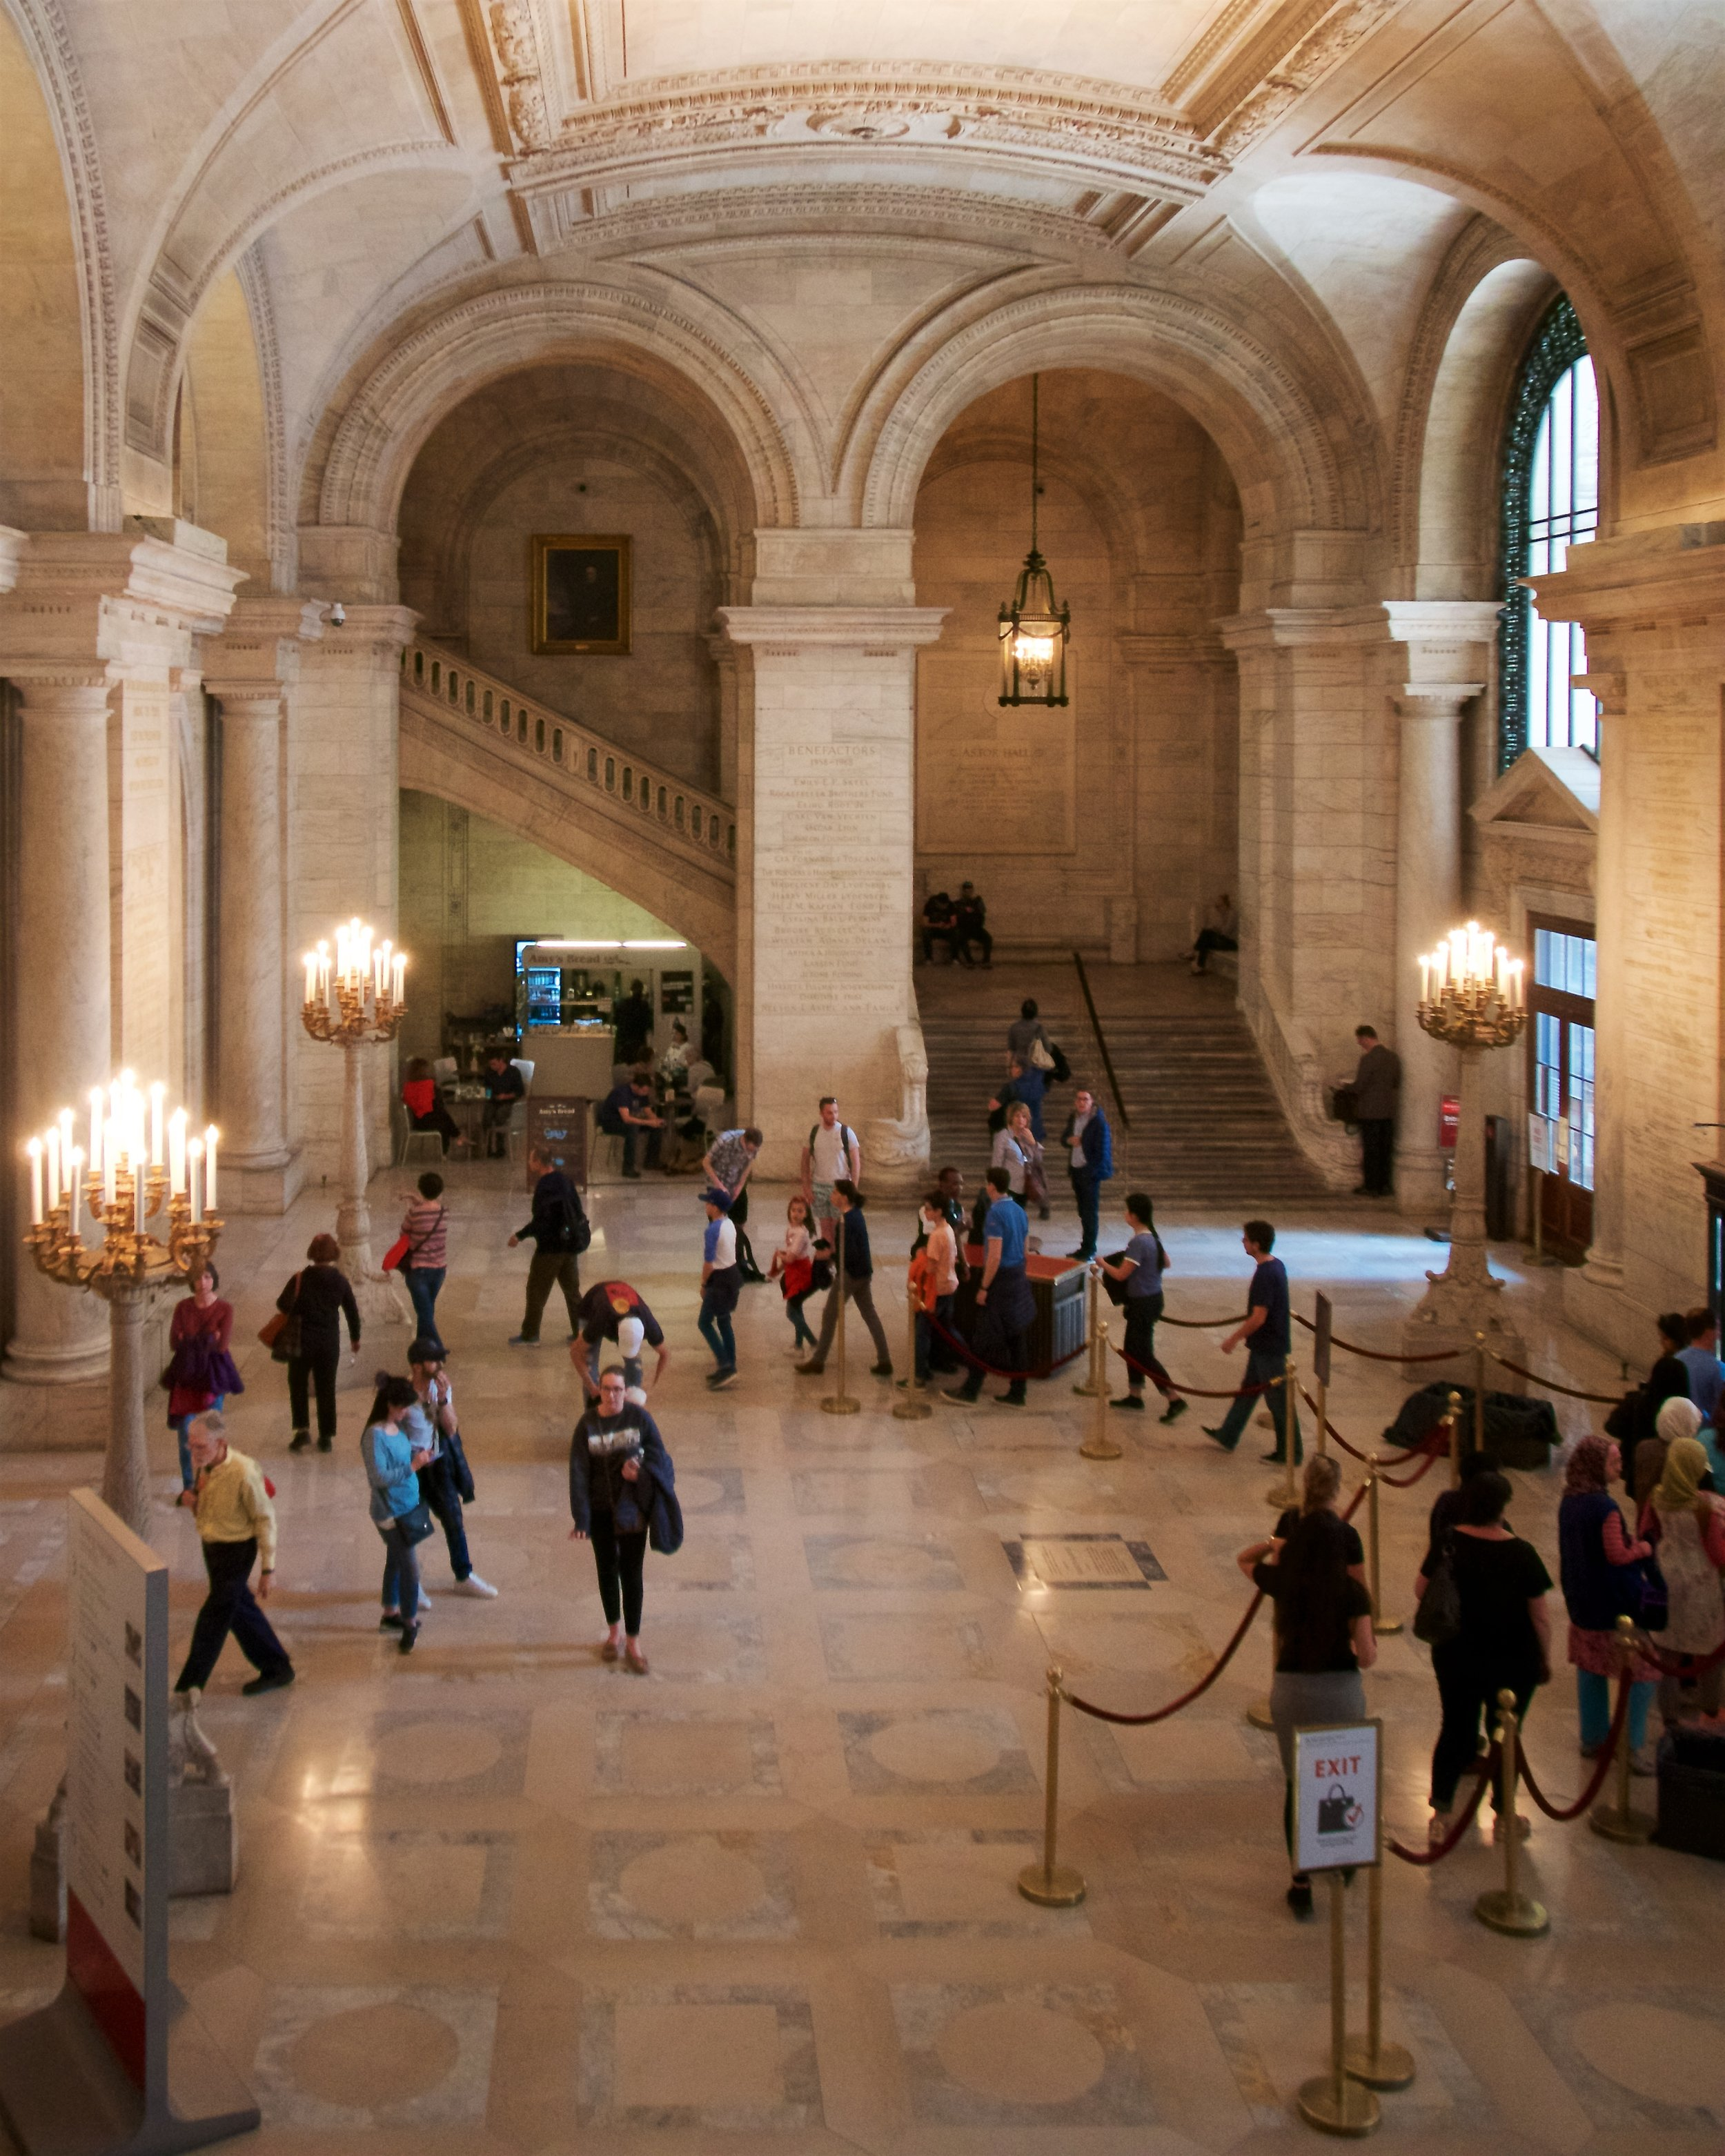 Entry of the New York Public Library